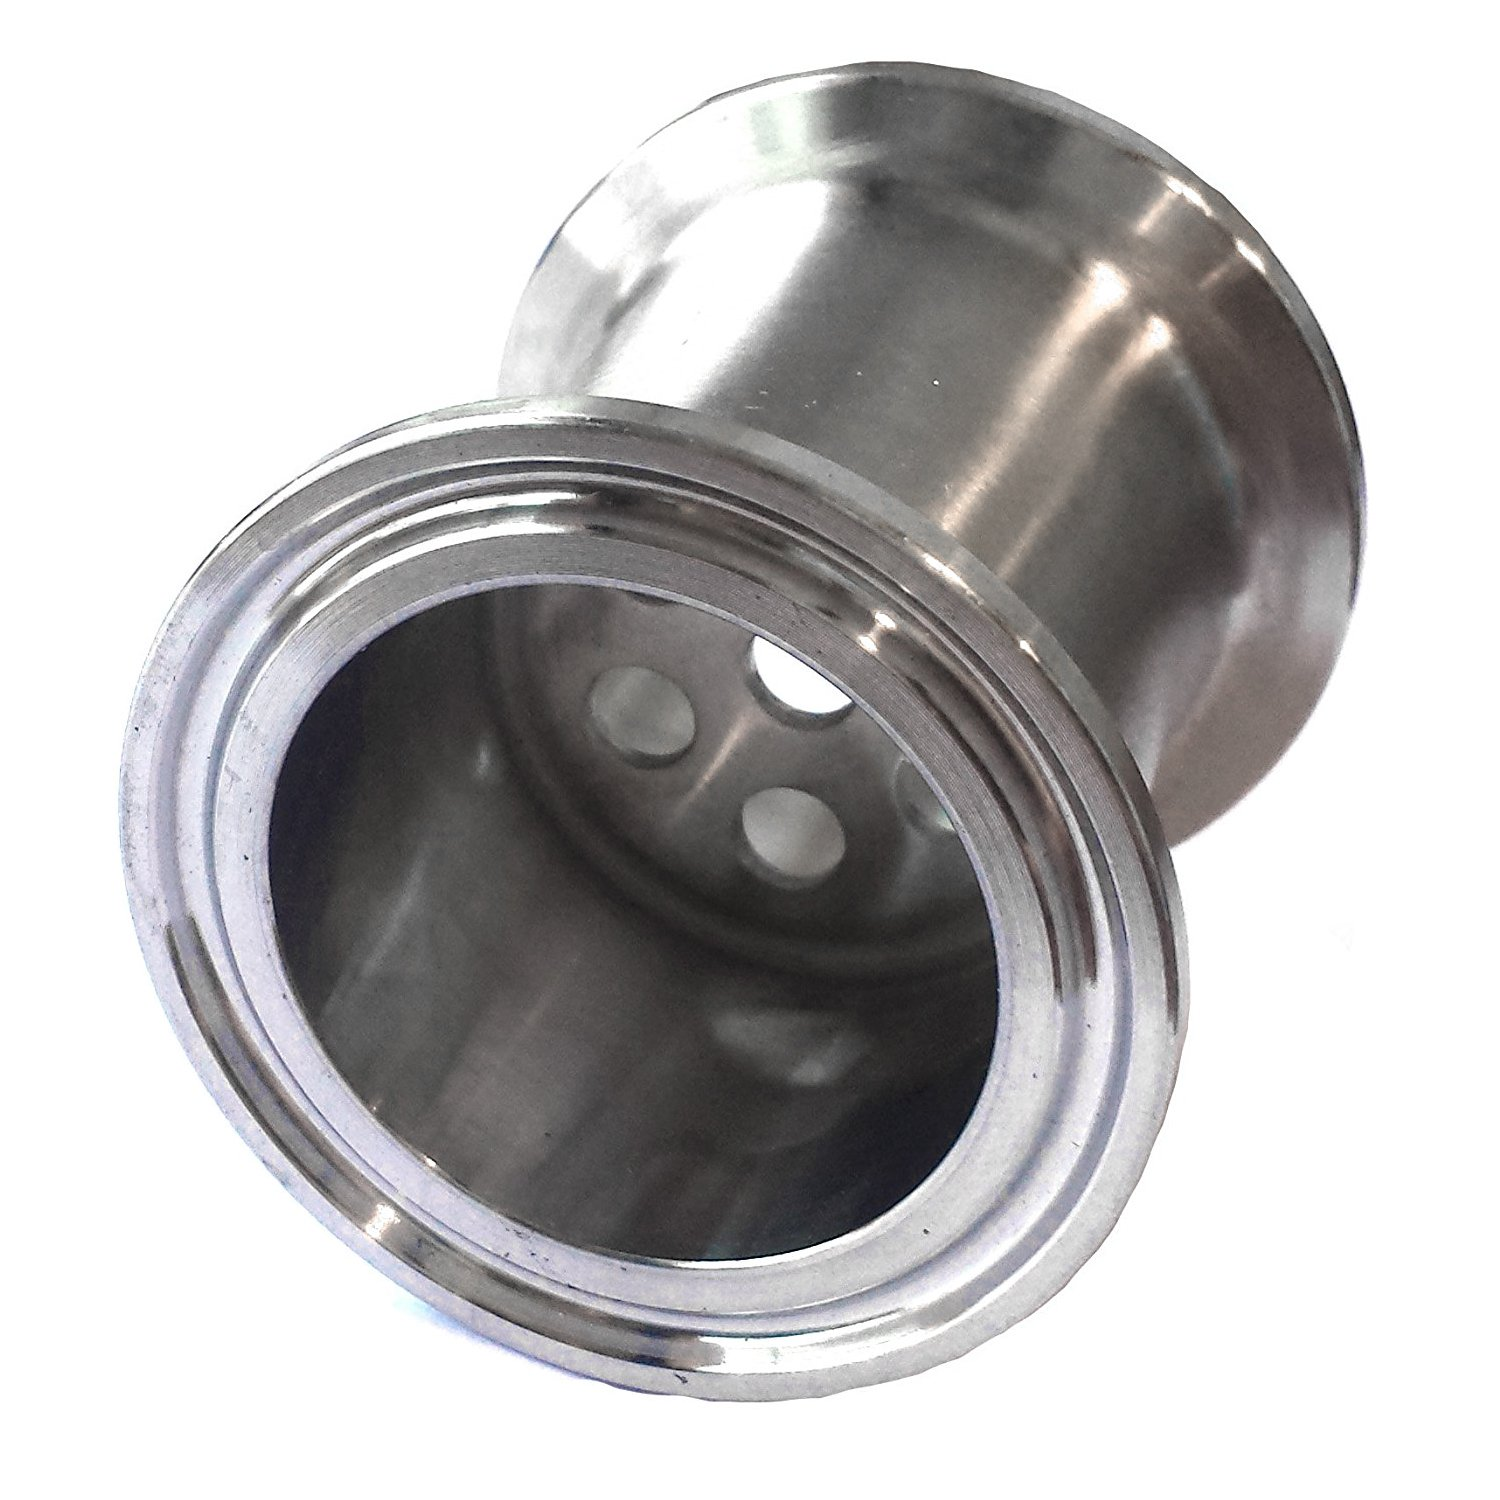 HFS (R) 1.5' Stainless Sanitary Filter Plate fits Tri-Clamp Ferrule Flange with 6mm holes